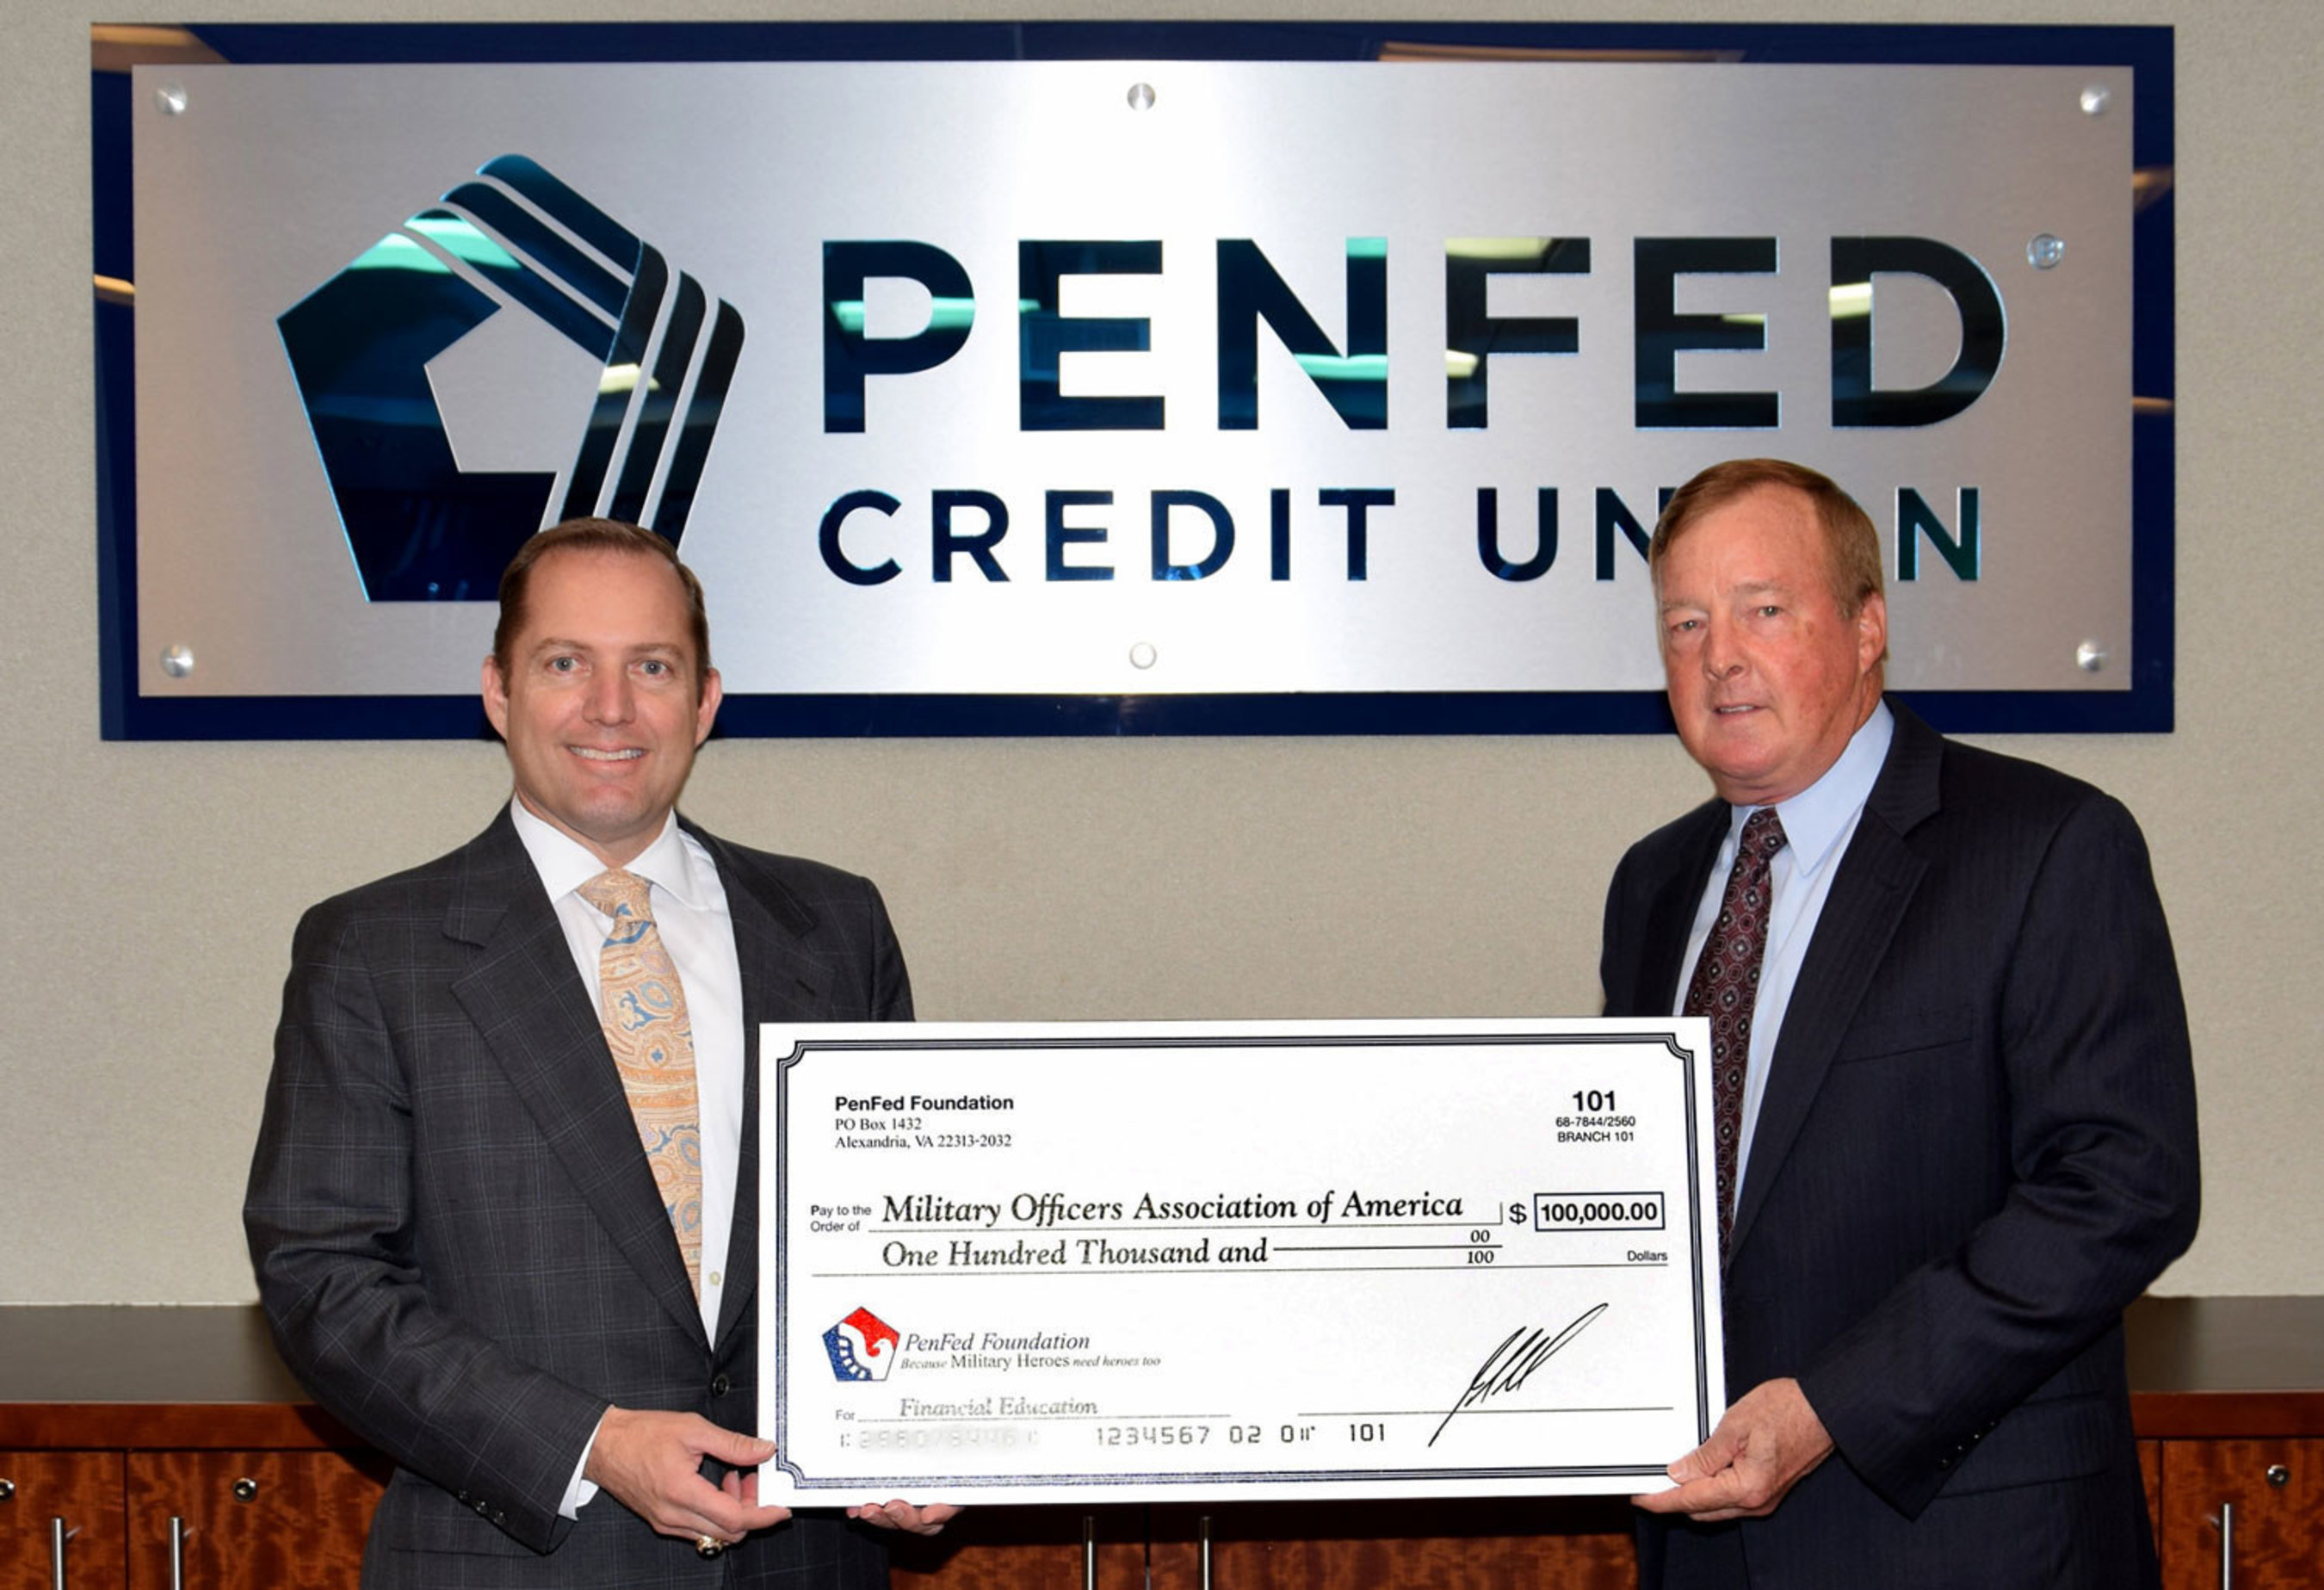 PenFed President and CEO James Schenck and MOAA President and CEO, retired Air Force Lt. Gen. Dana Atkins.